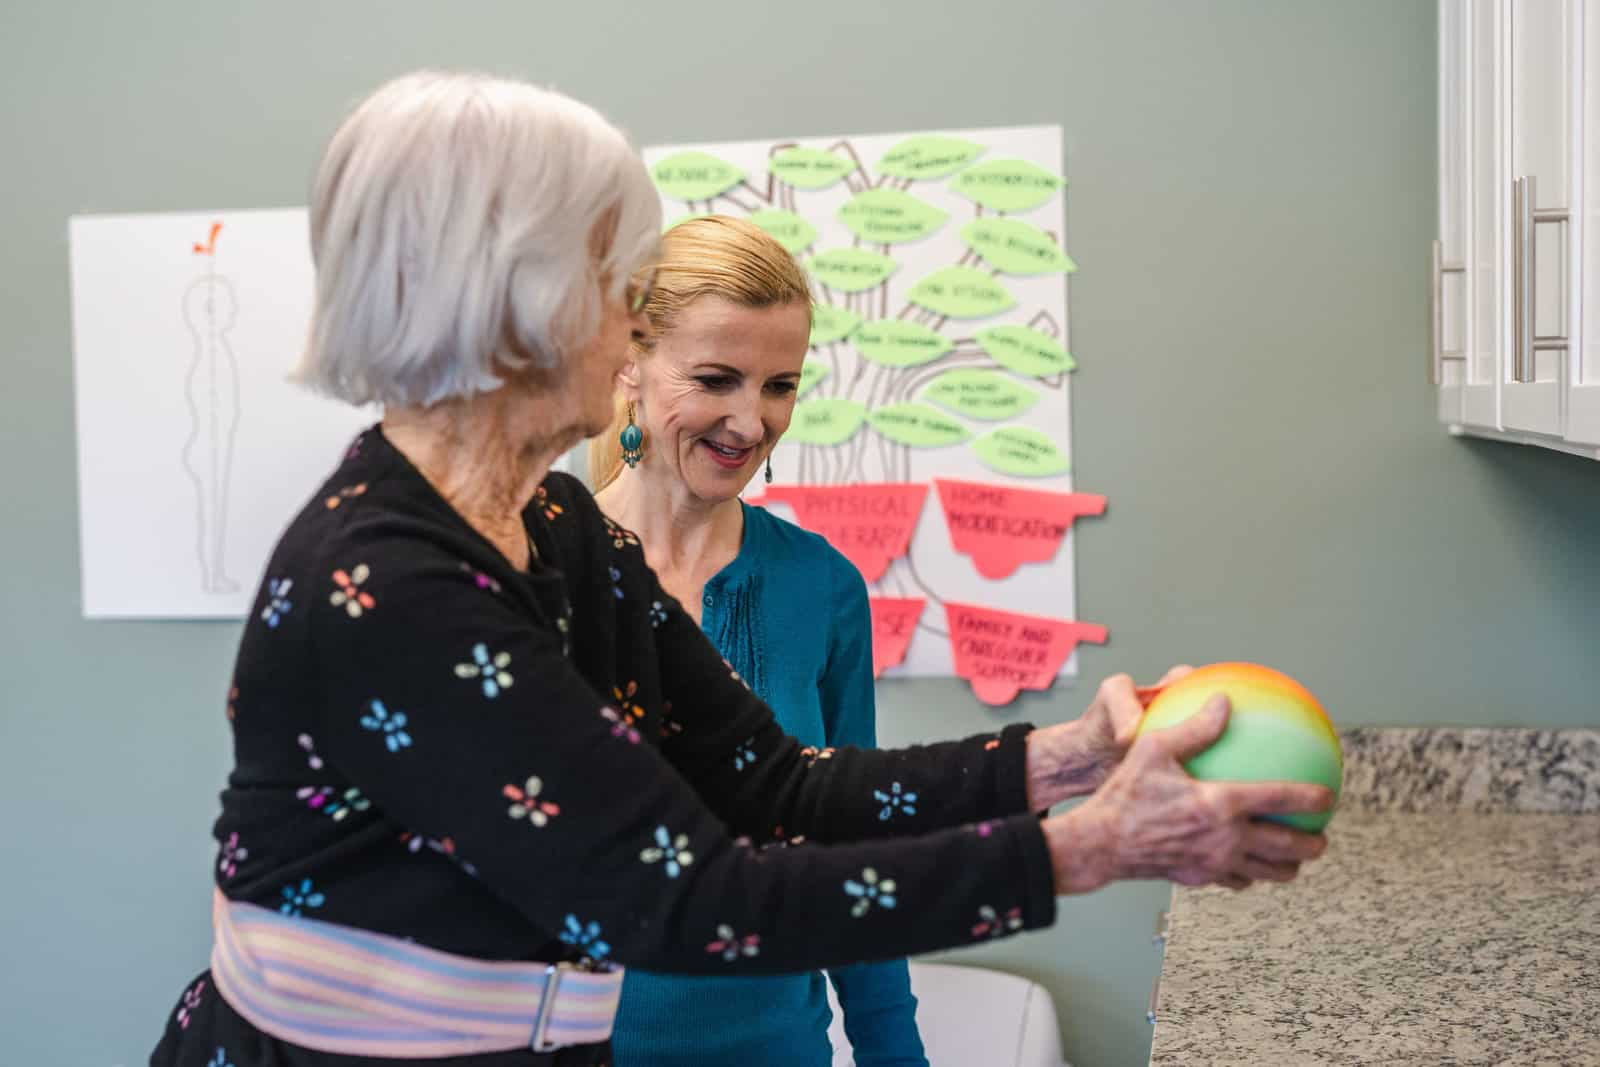 Senior Woman Holding Weighted Ball With Physical Therapist Monitoring